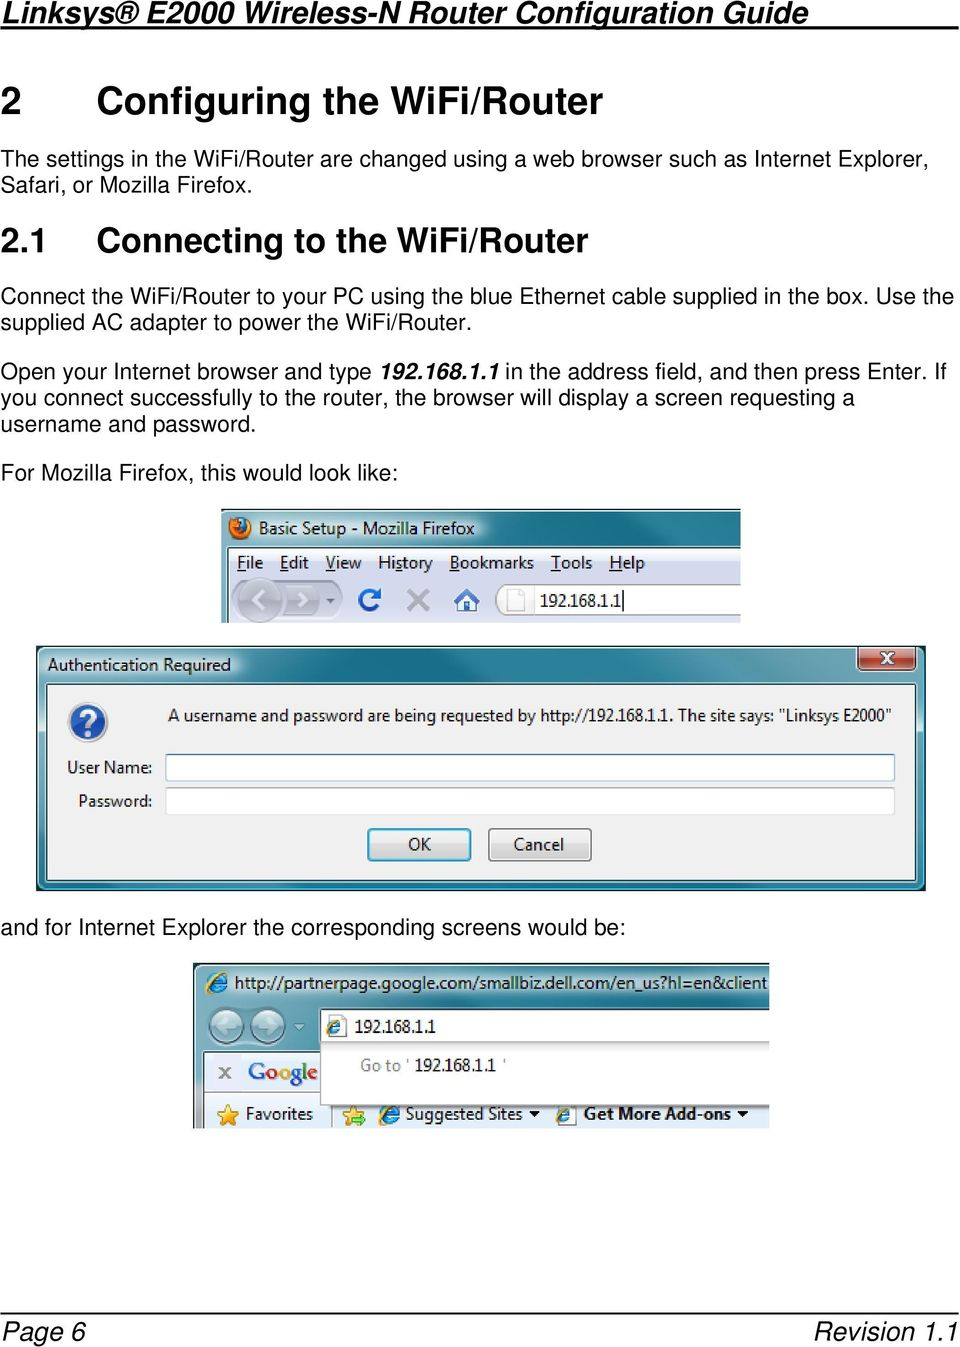 Linksys E2000 Wireless-N Router Configuration Guide - PDF